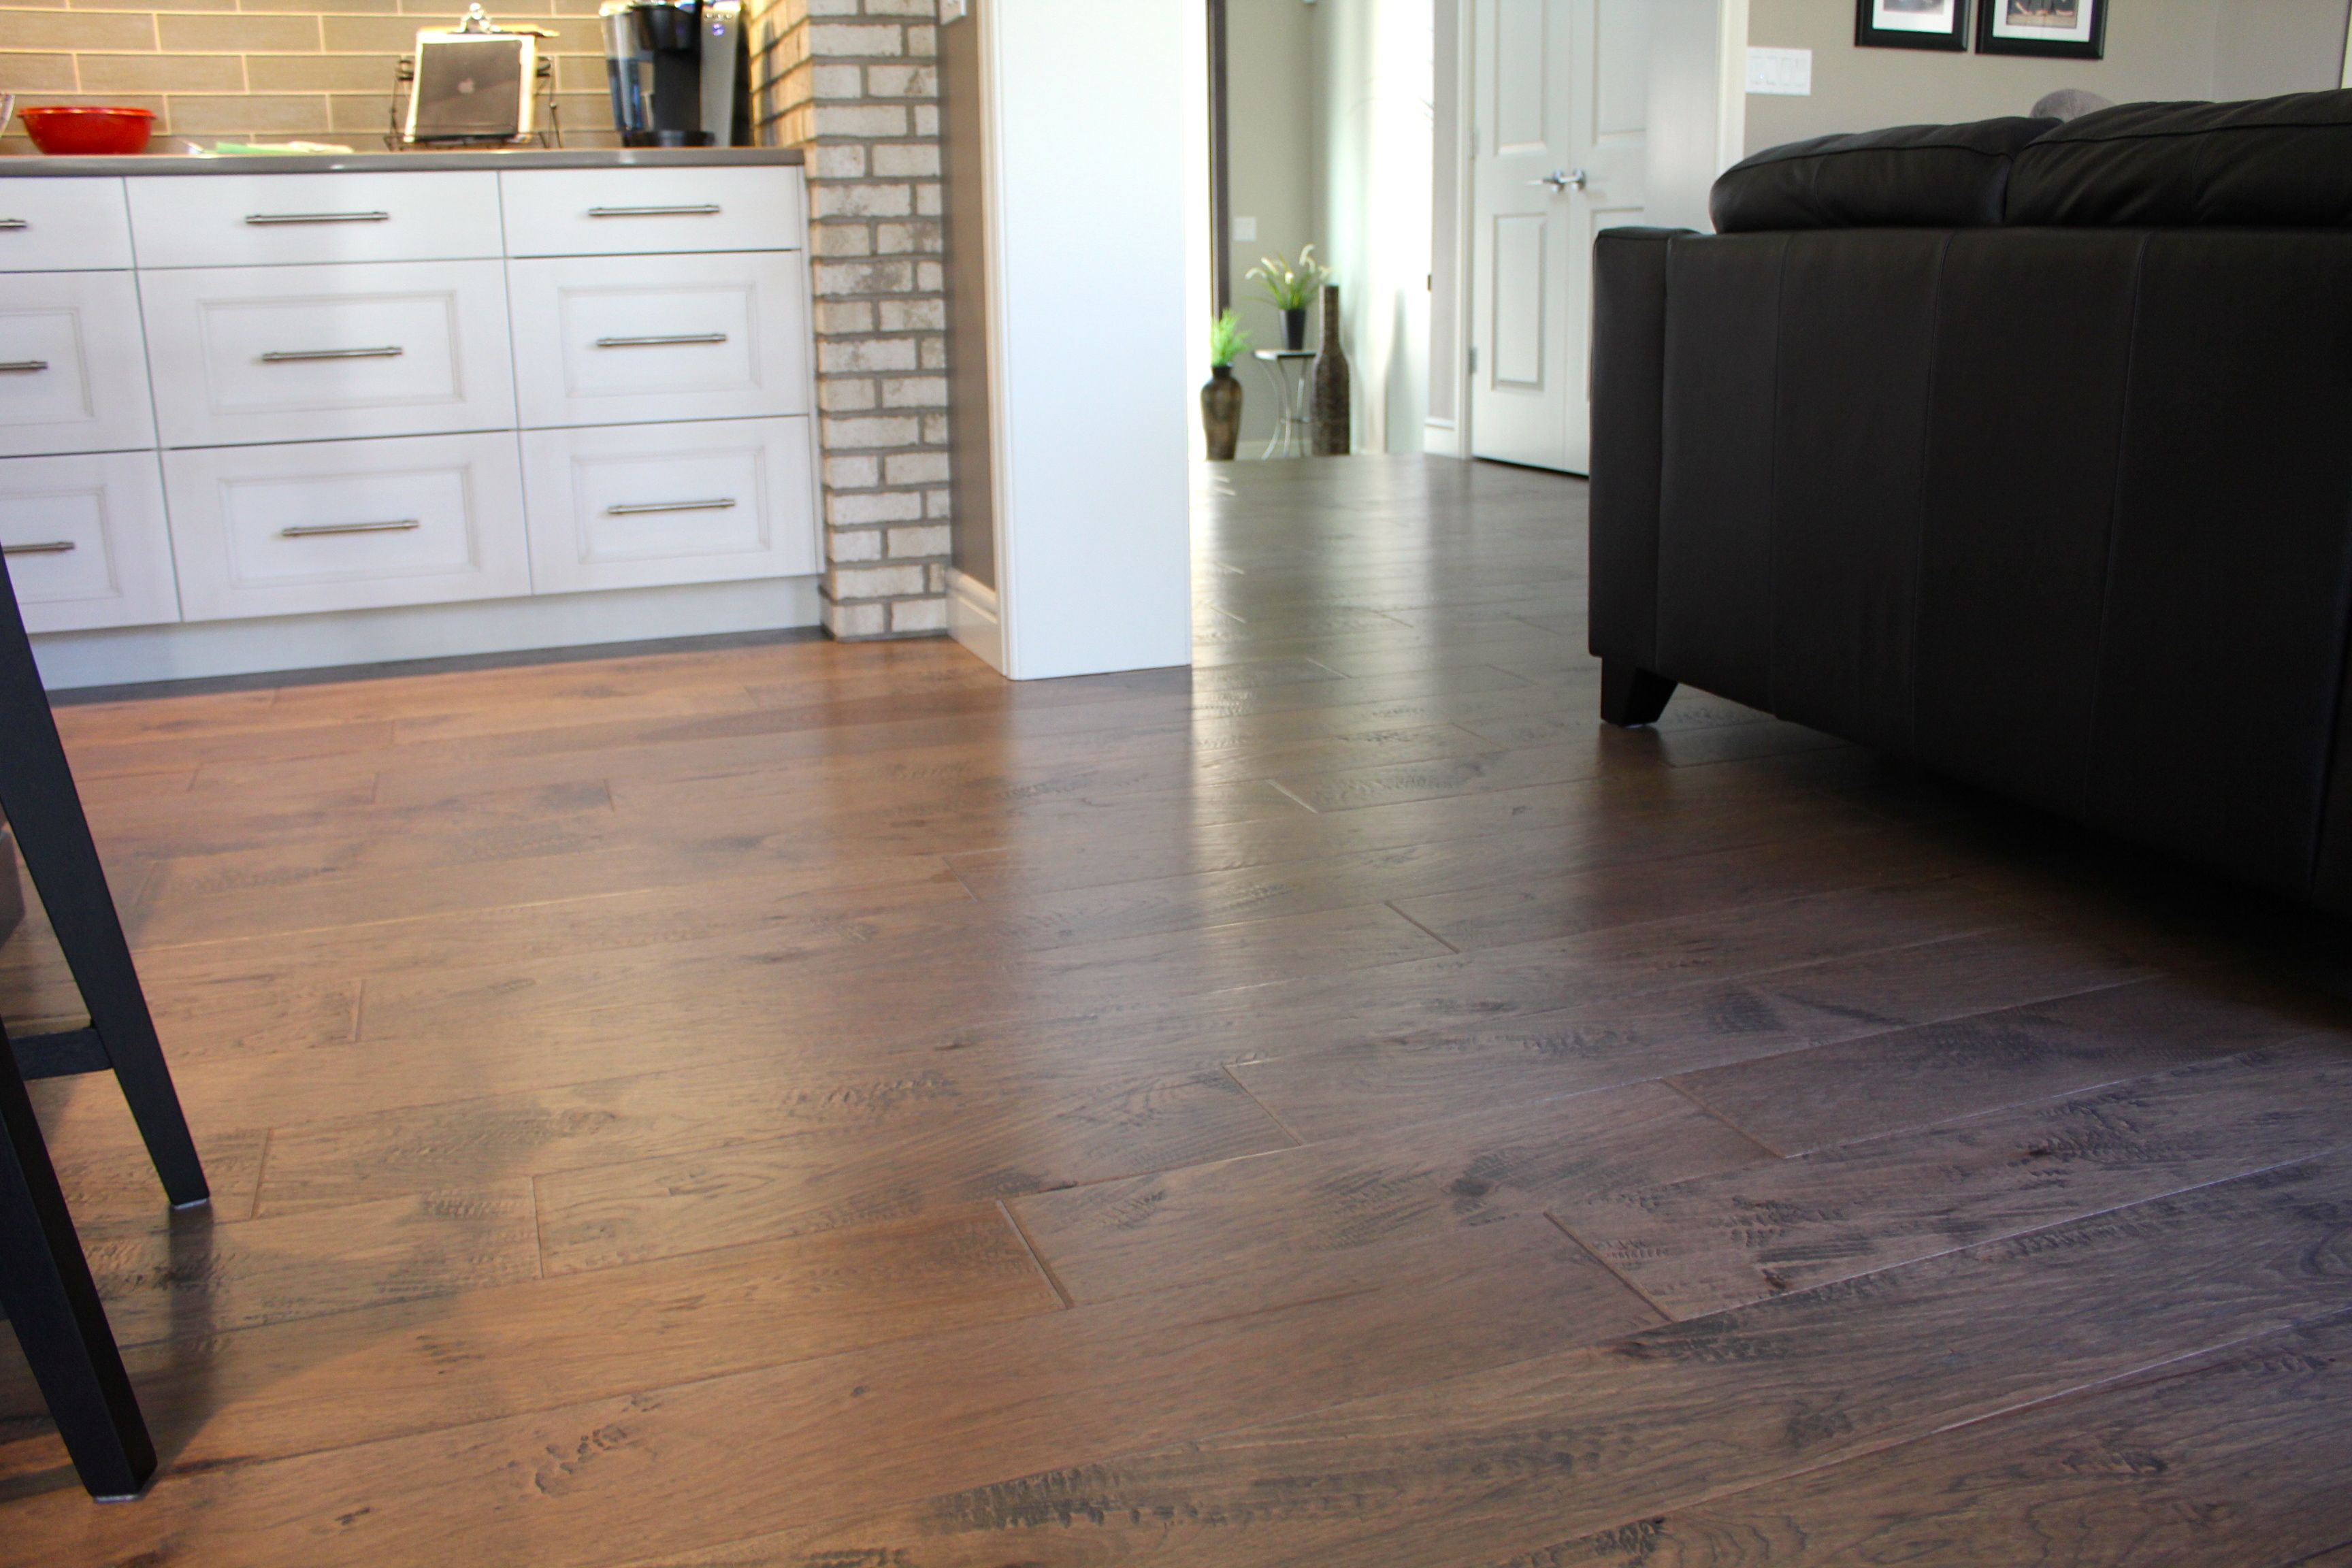 Engineered Hardwood Flooring Las Vegas Of Preverco Flooring Floor Intended for Preverco Flooring Wildwood Chateau Hickory Liberty Grey Engineered Hardwood